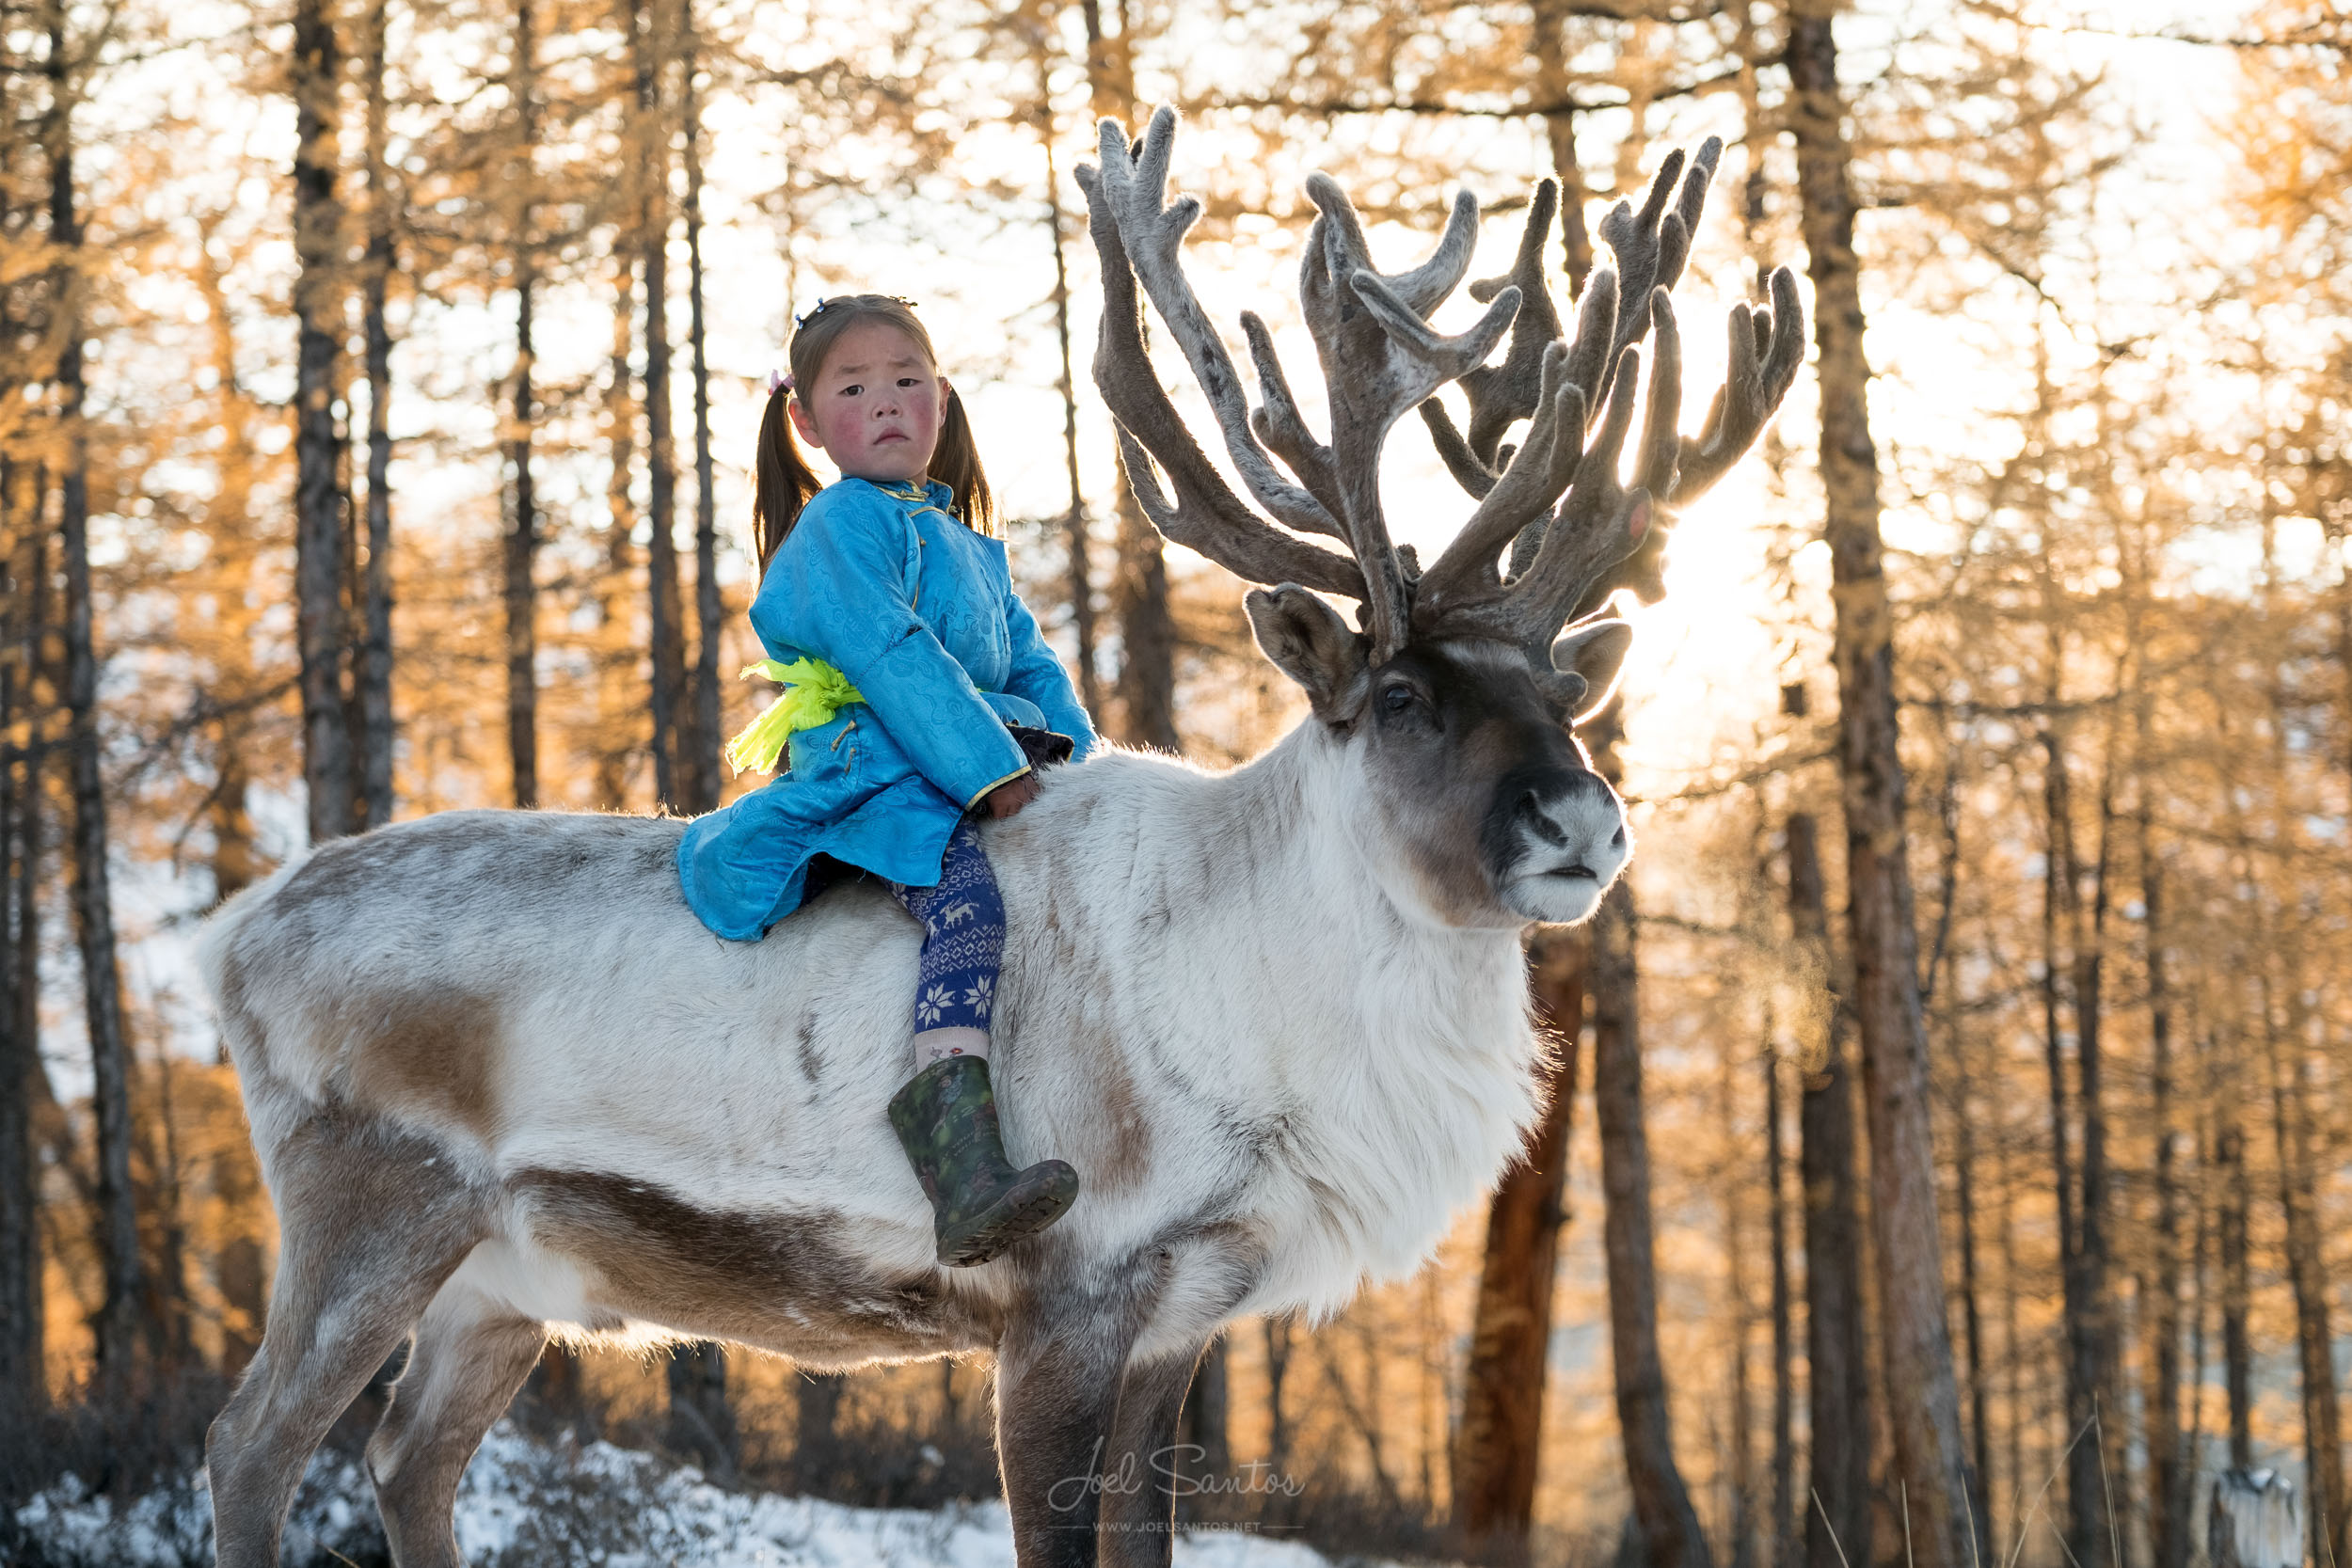 One of the youngest members of the family, Uchraa is already well trained in riding the family reindeer. From the age of two, Tsaatan reindeer are trained to carry children and at three they are able to carry adults.